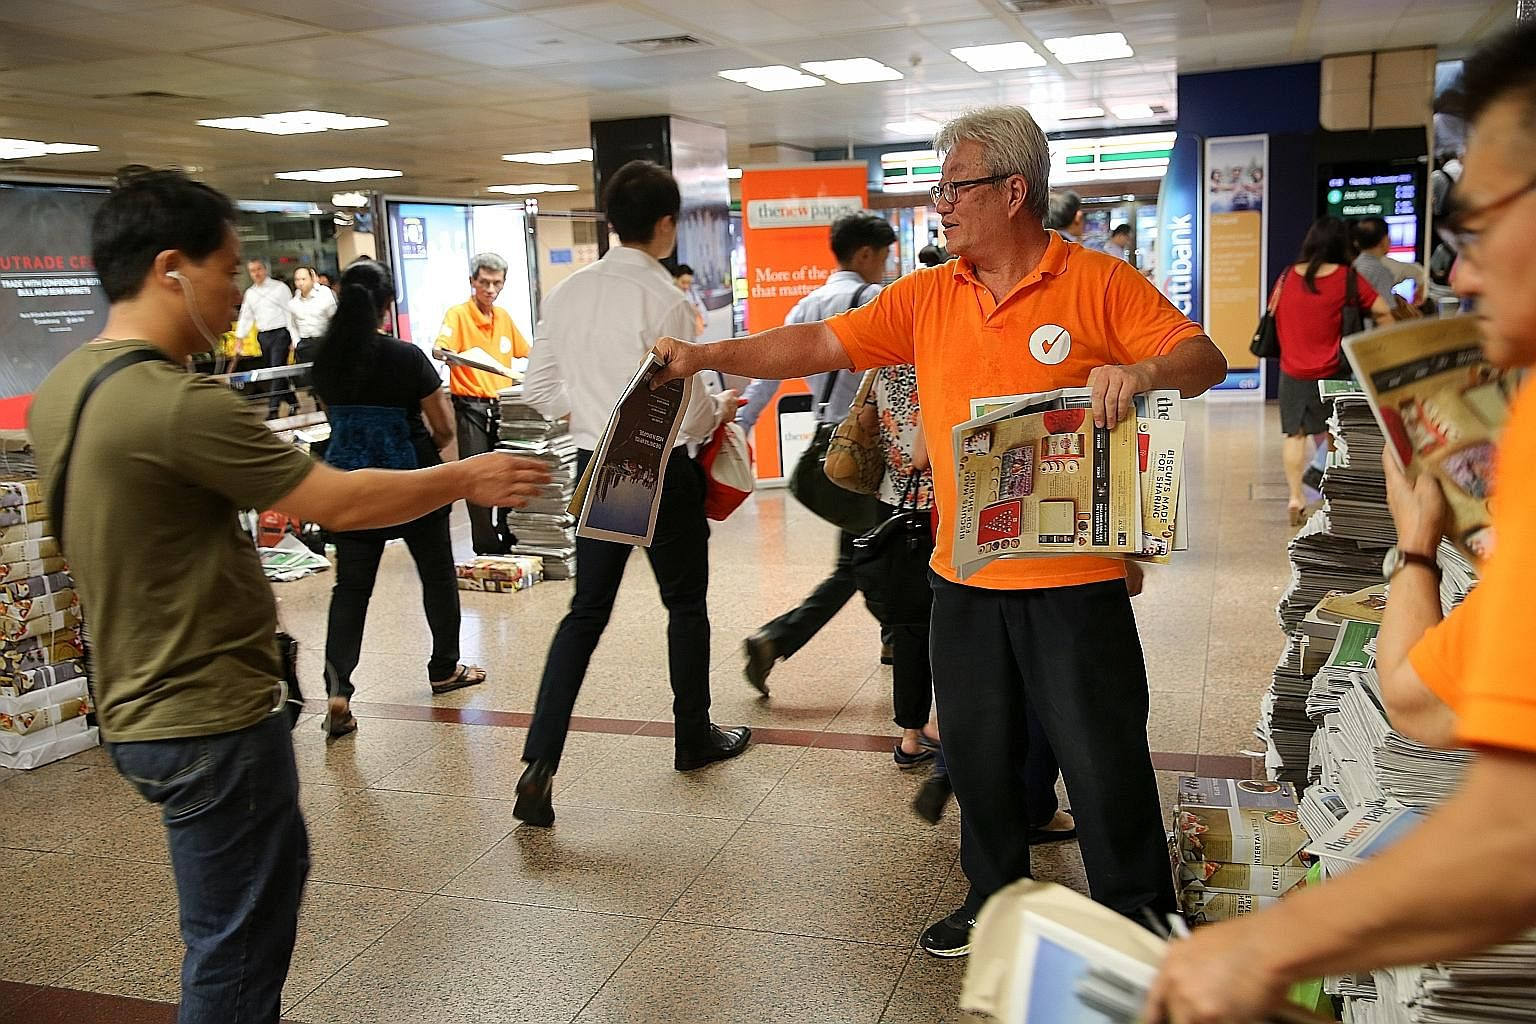 A commuter grabbing a TNP copy at Raffles Place MRT station, one of the regular poi